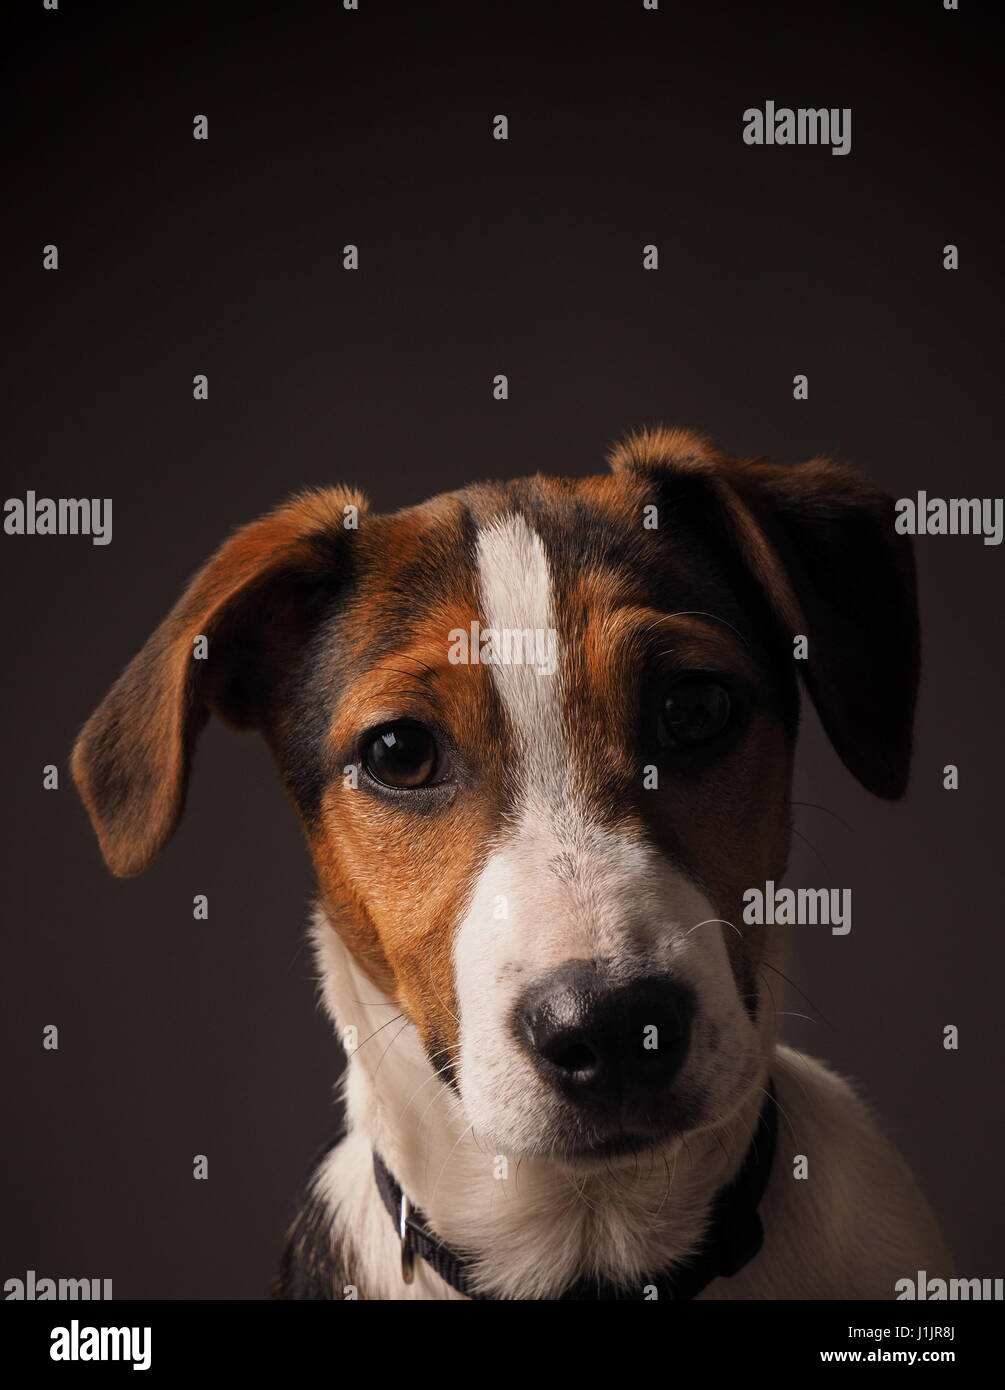 Studio portrait of a cute Jack Russell terrier puppy - Stock Image